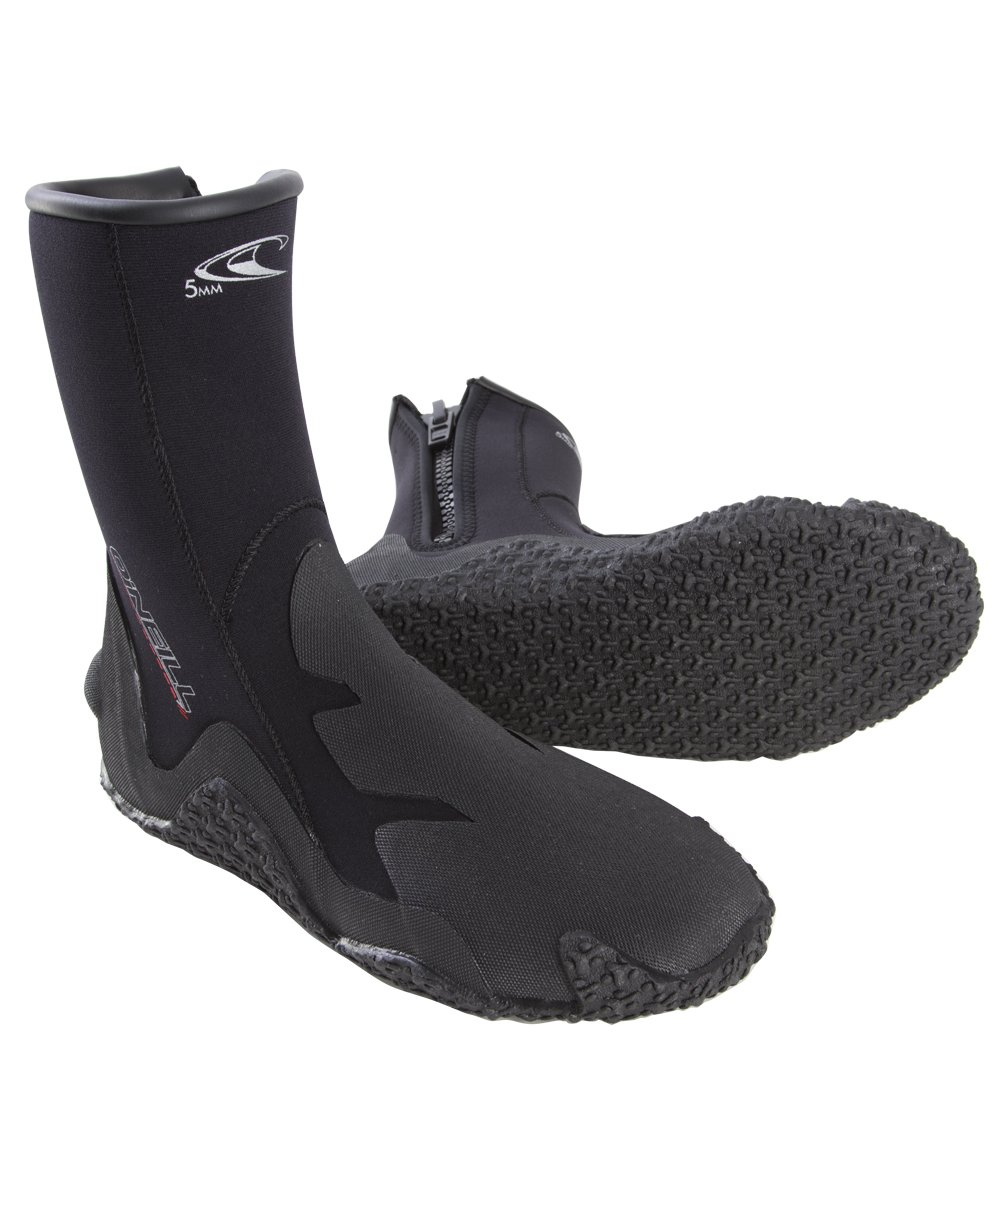 O'Neill Wetsuits Men's Dive 5mm Booties with Zipper